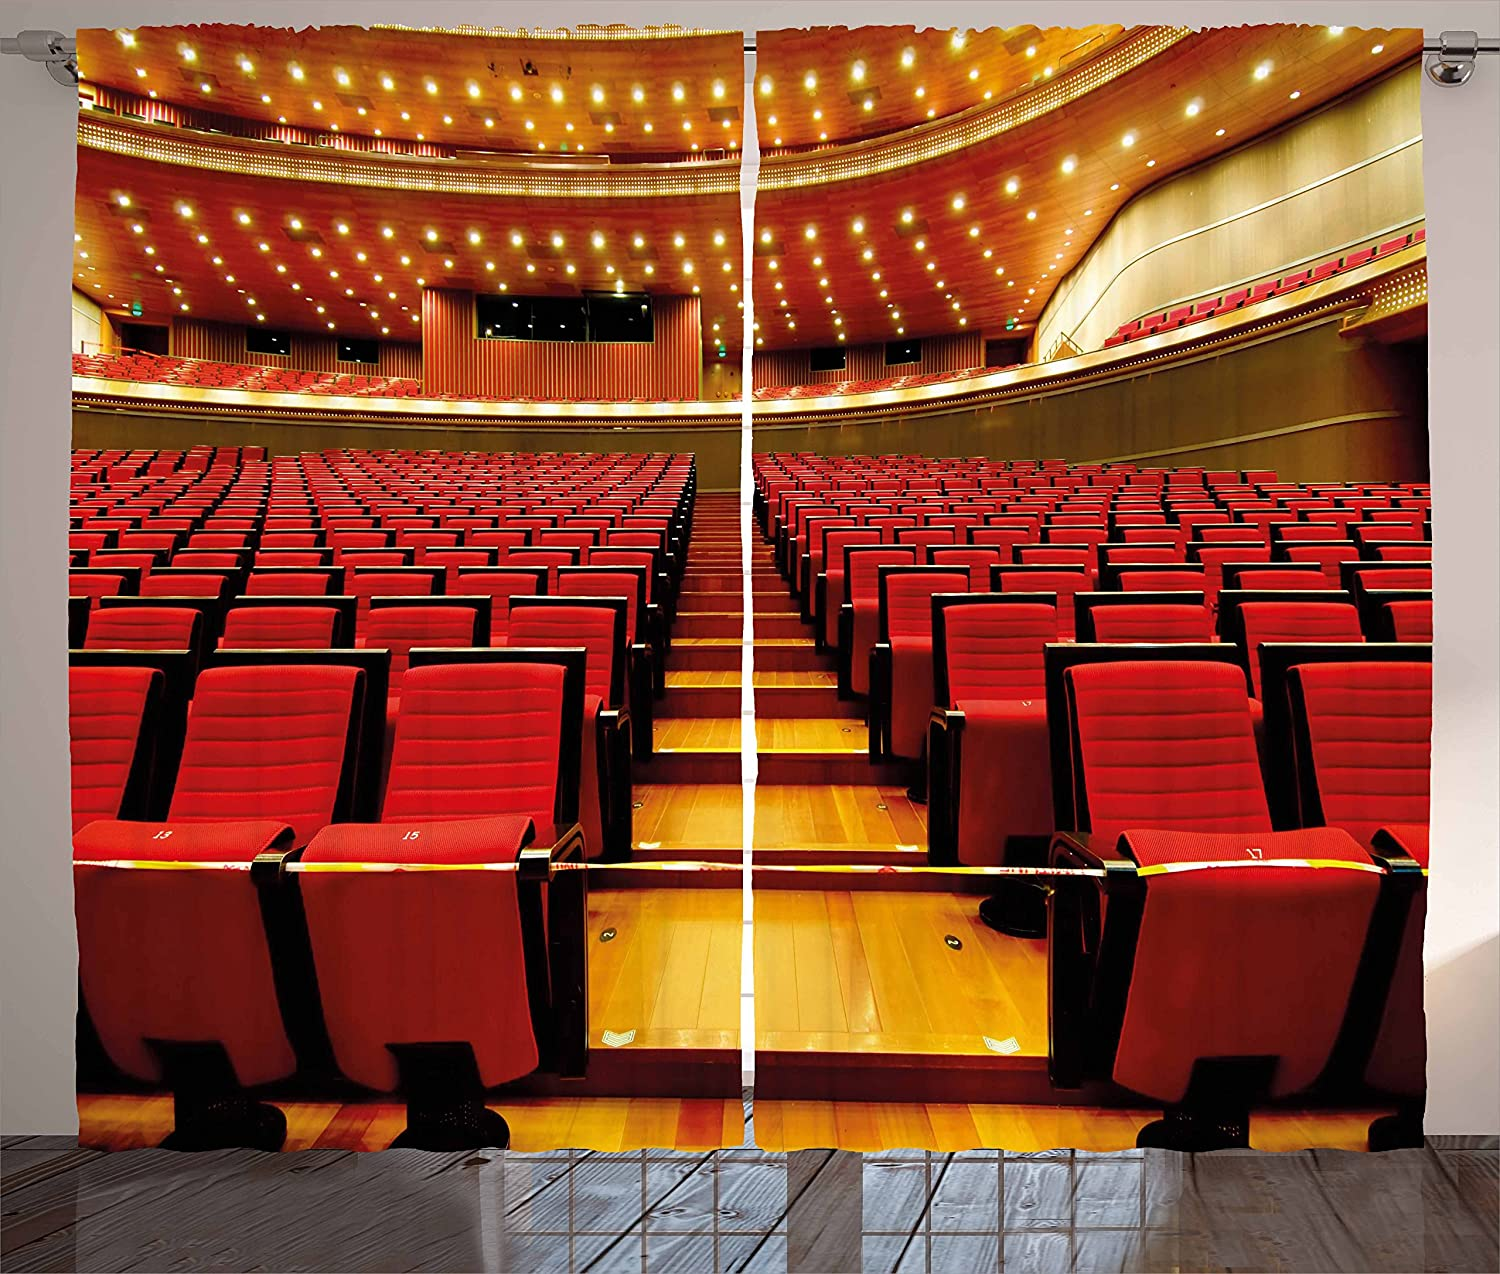 Musical Theatre Window Curtains for Kids Room China National Grand Theater Hall Chairs Auditorium Eastern ry Window Drapes